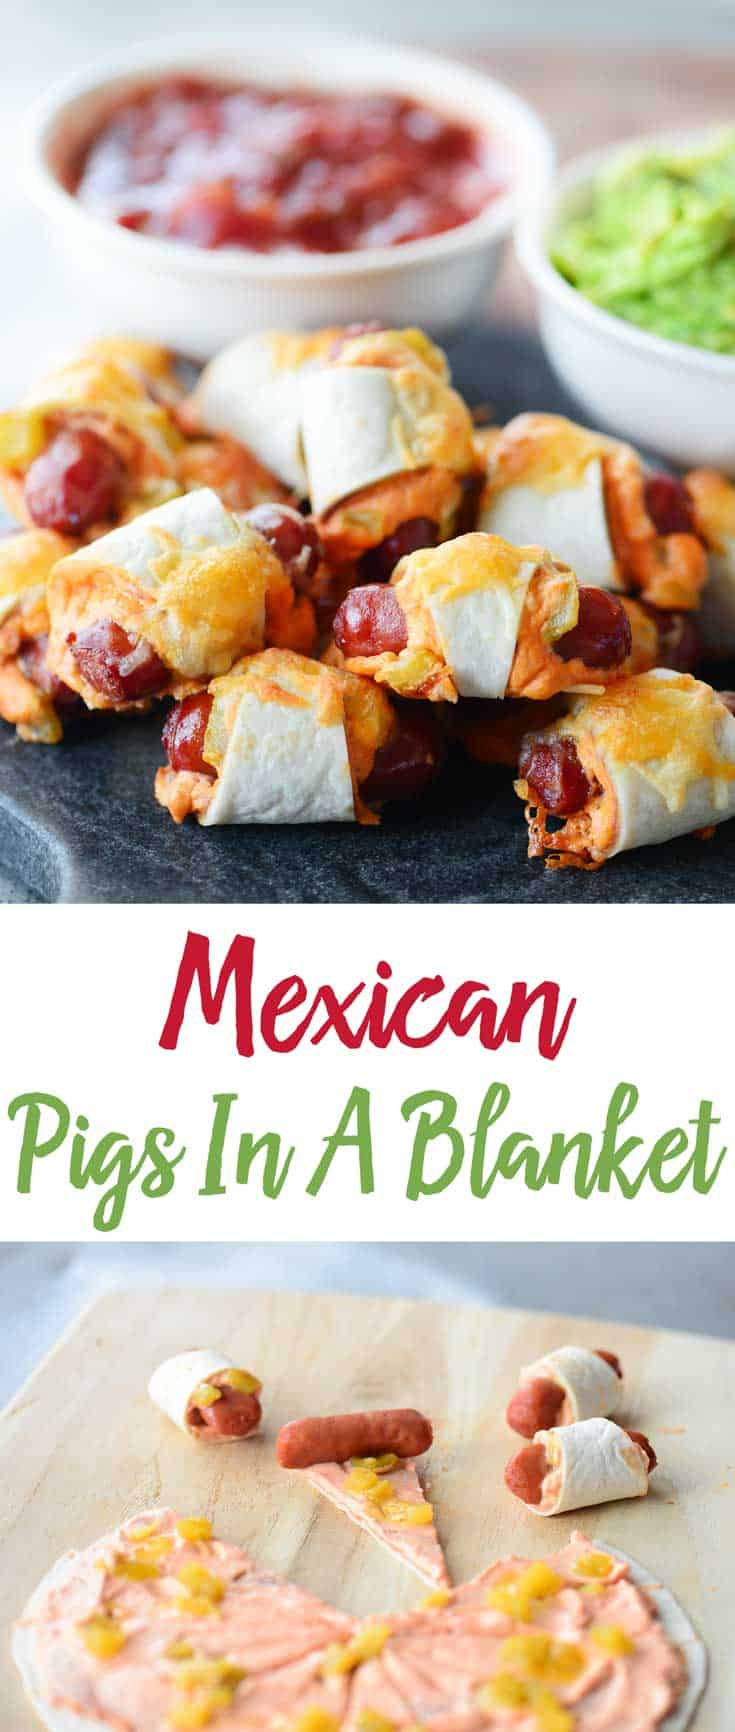 Mexican Pigs In A Blanket Pinterest Collage